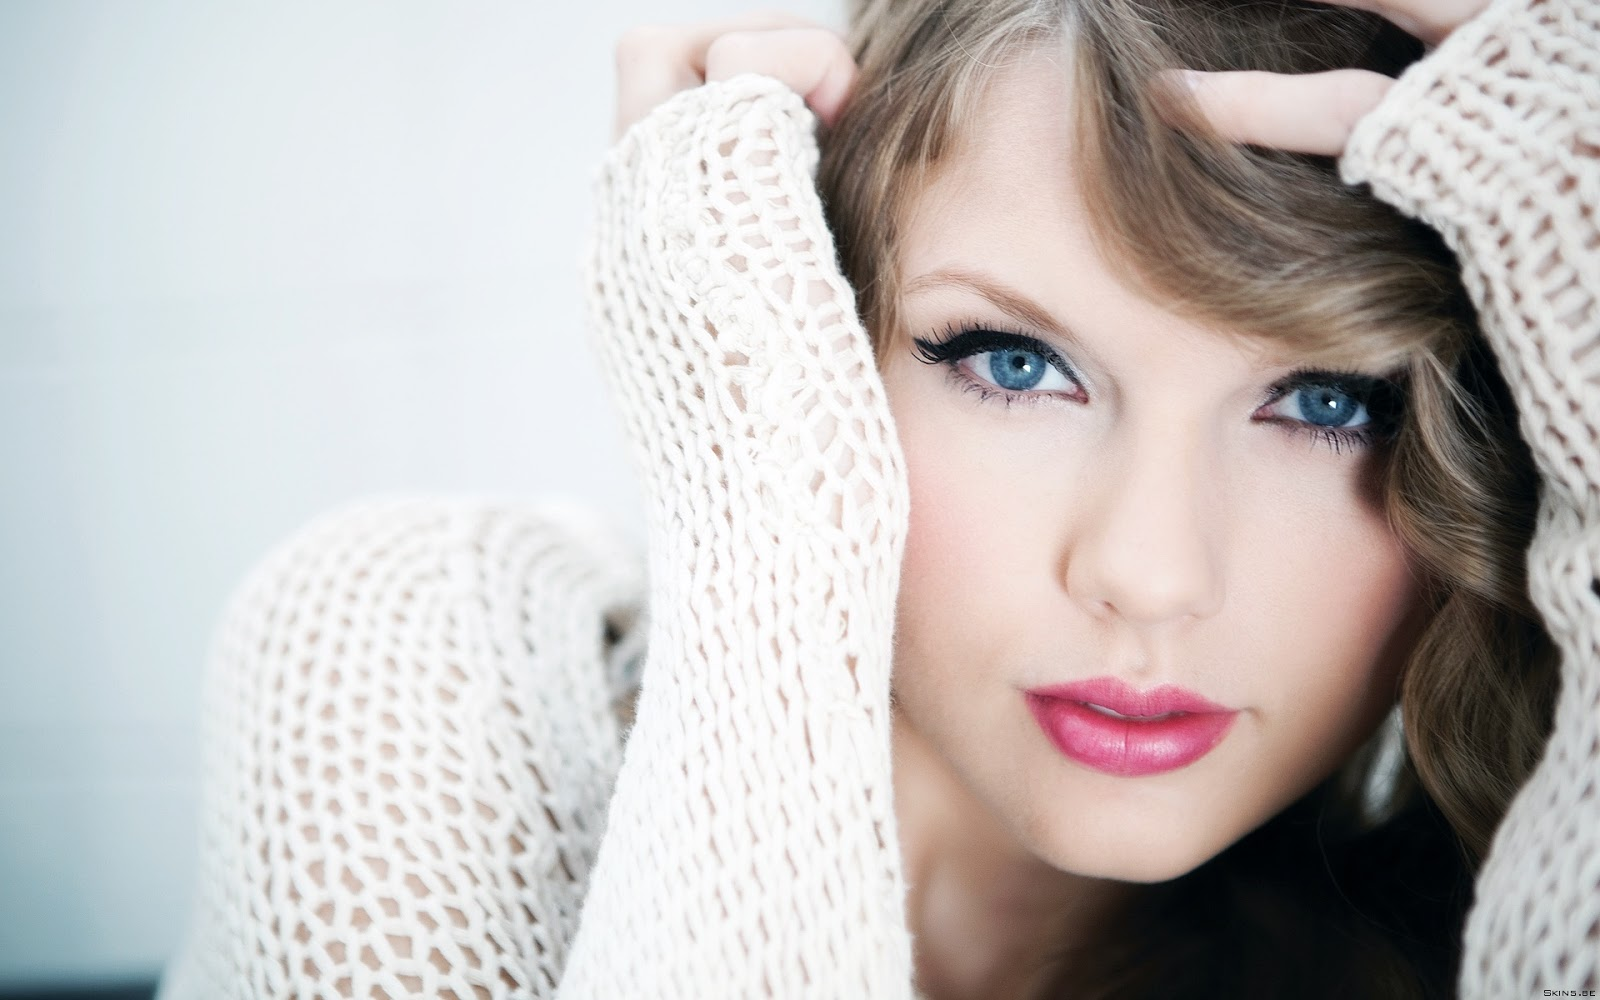 http://1.bp.blogspot.com/-ObgDxOitpuk/UO3jLC5vfSI/AAAAAAAAx3g/MT71jWDpfjA/s1600/Face-Blue-Eyes-Taylor-Swift-Wallpapers-HD.jpg